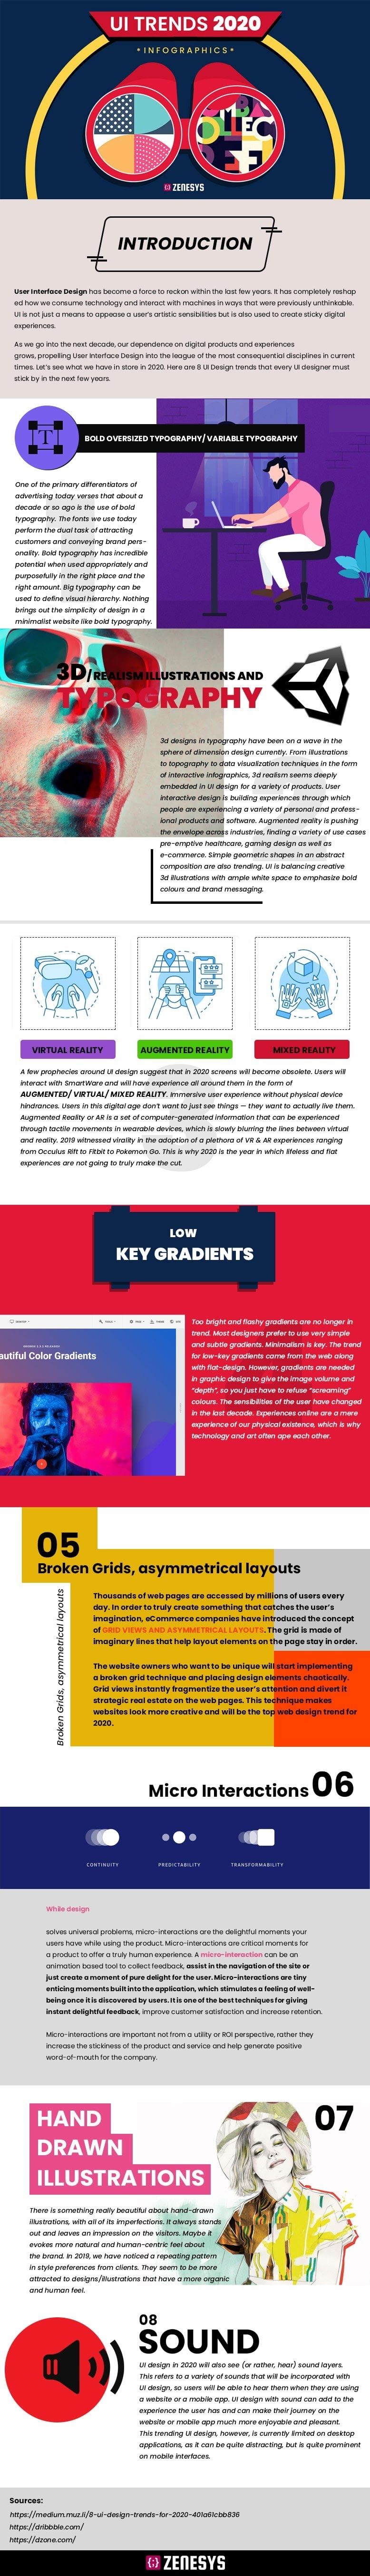 Top UI Trends for 2020 #infographic